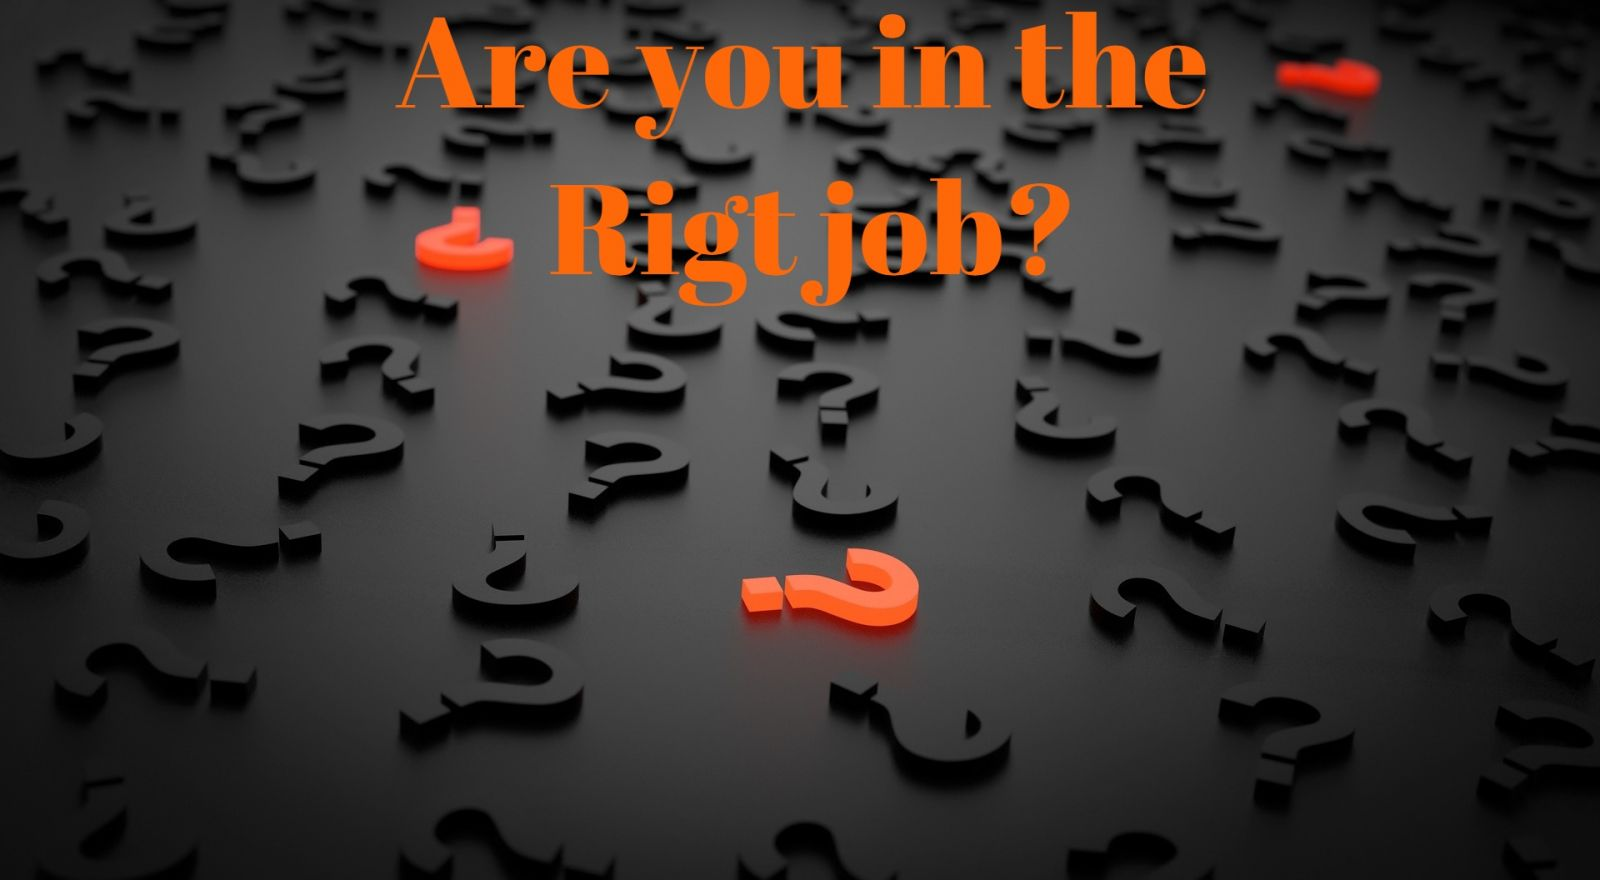 Are You In the Right Job?